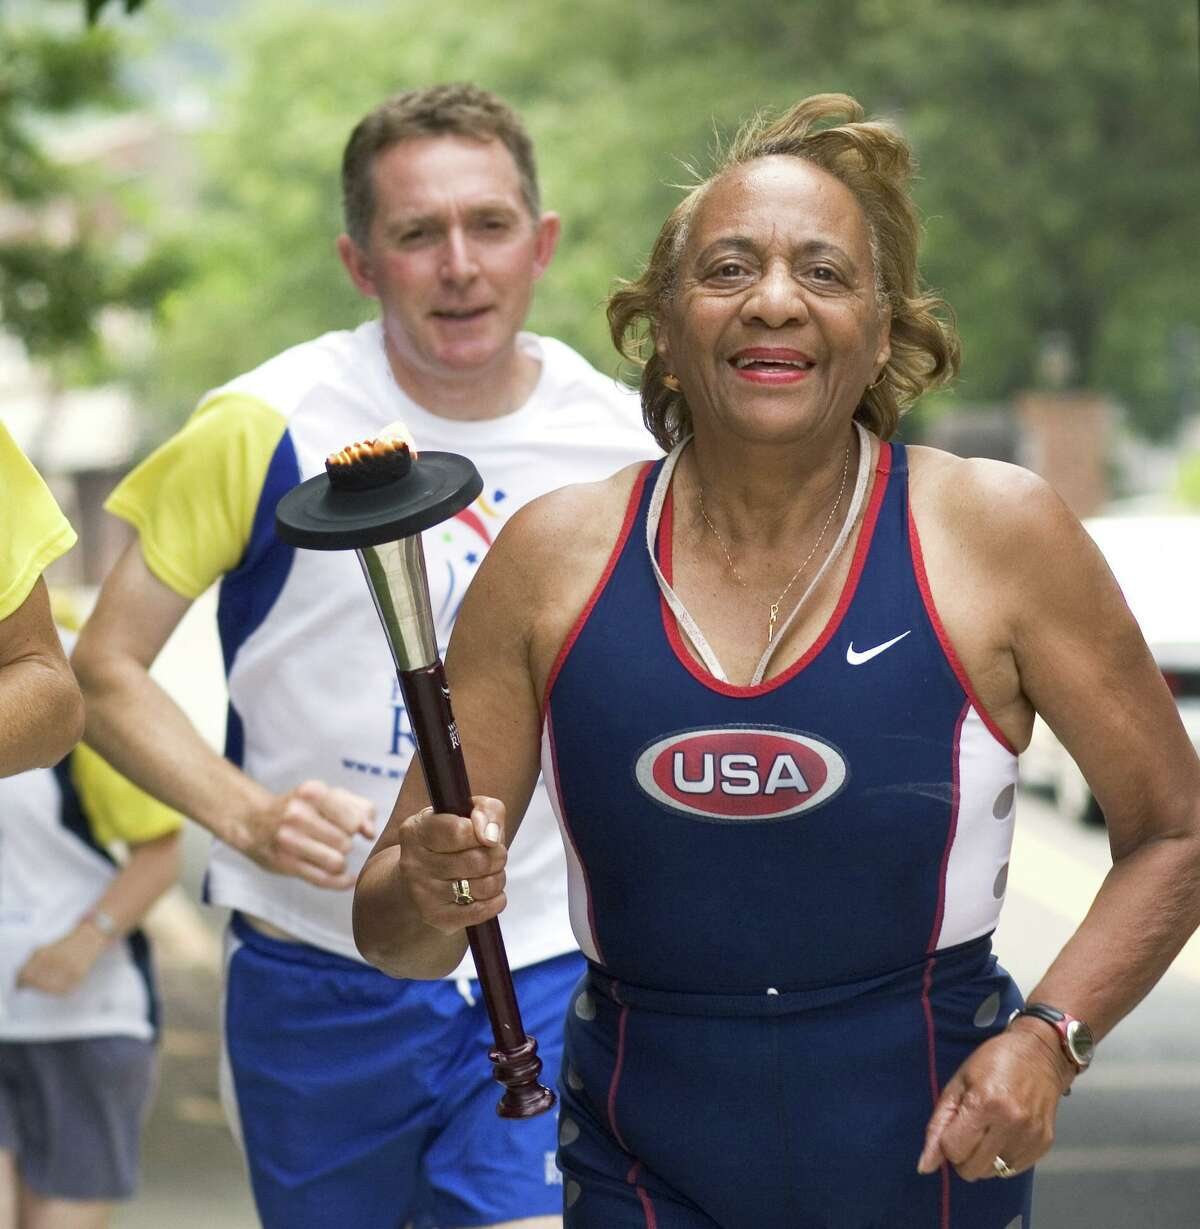 Mary Roman, former city clerk for the City of Norwalk, right, carries the torch during the World Harmony Run as it makes its way through Norwalk in 2008. Roman is trying to raise funds to compete in the World Masters Games in Australia.